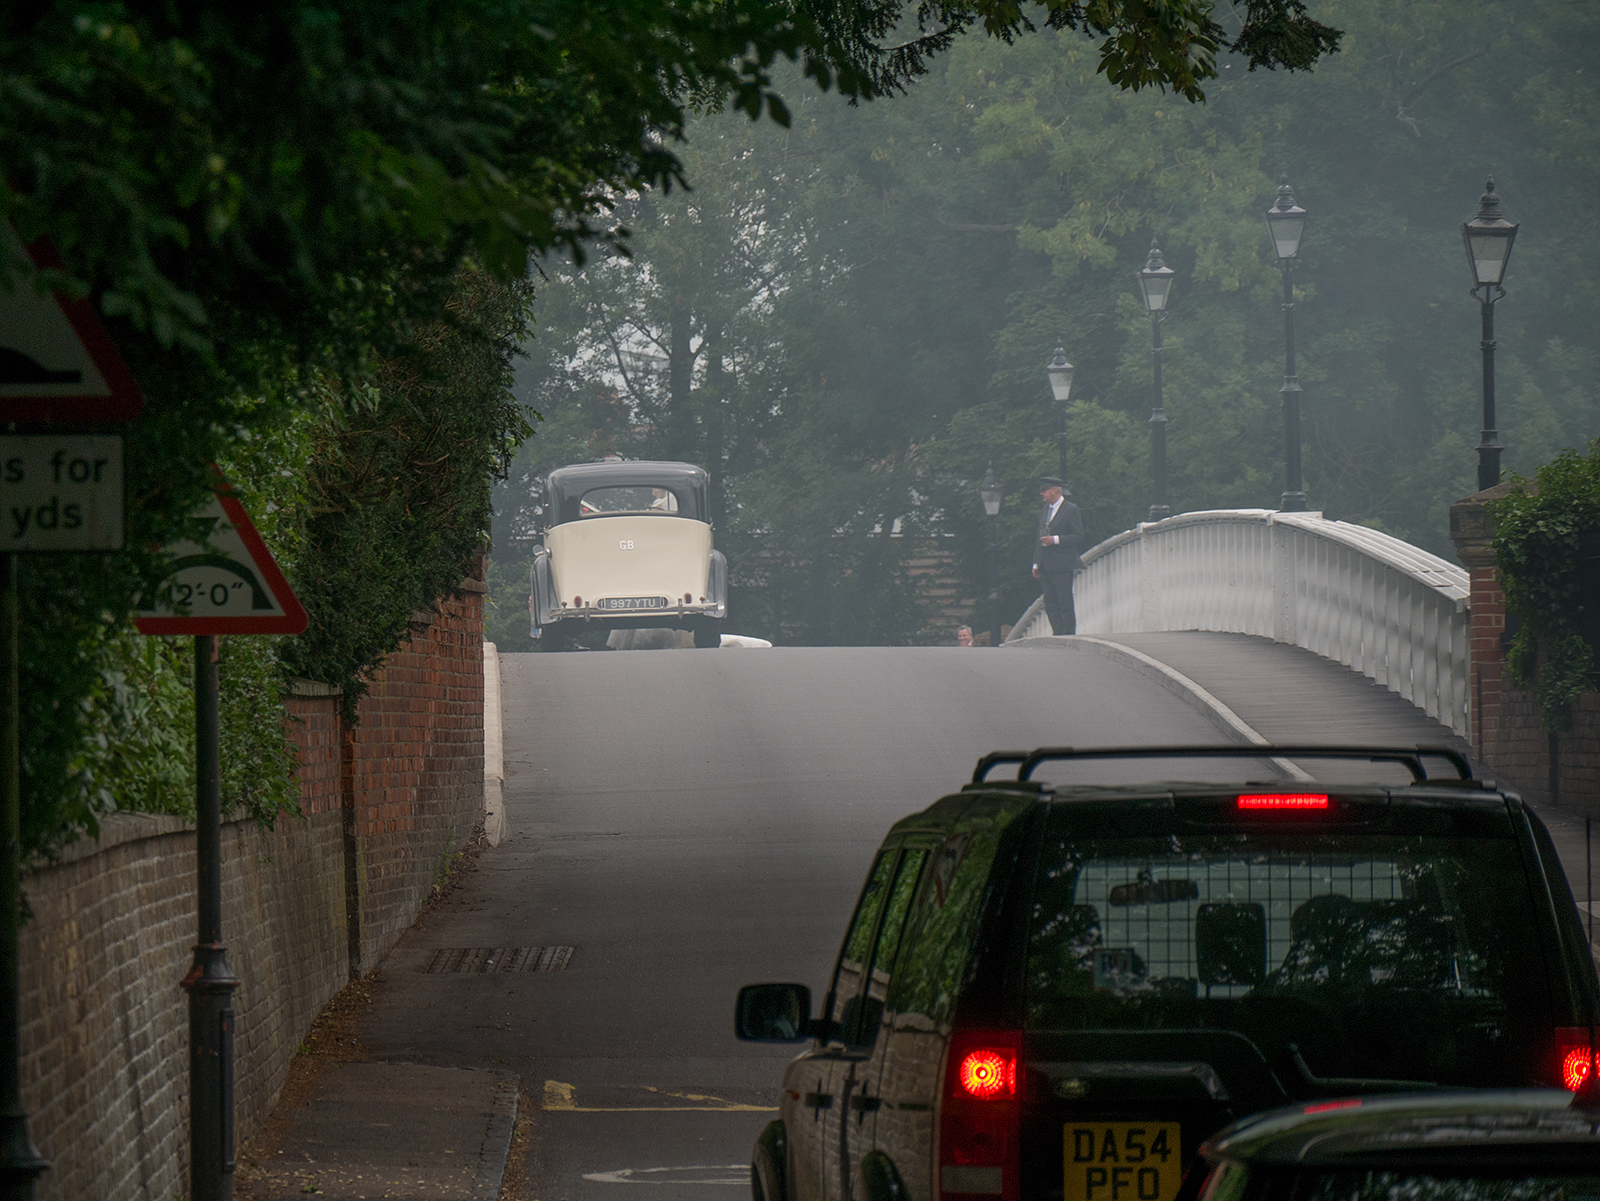 Wedding car on the bridge at Pangbourne amidst nearby bonfire smoke